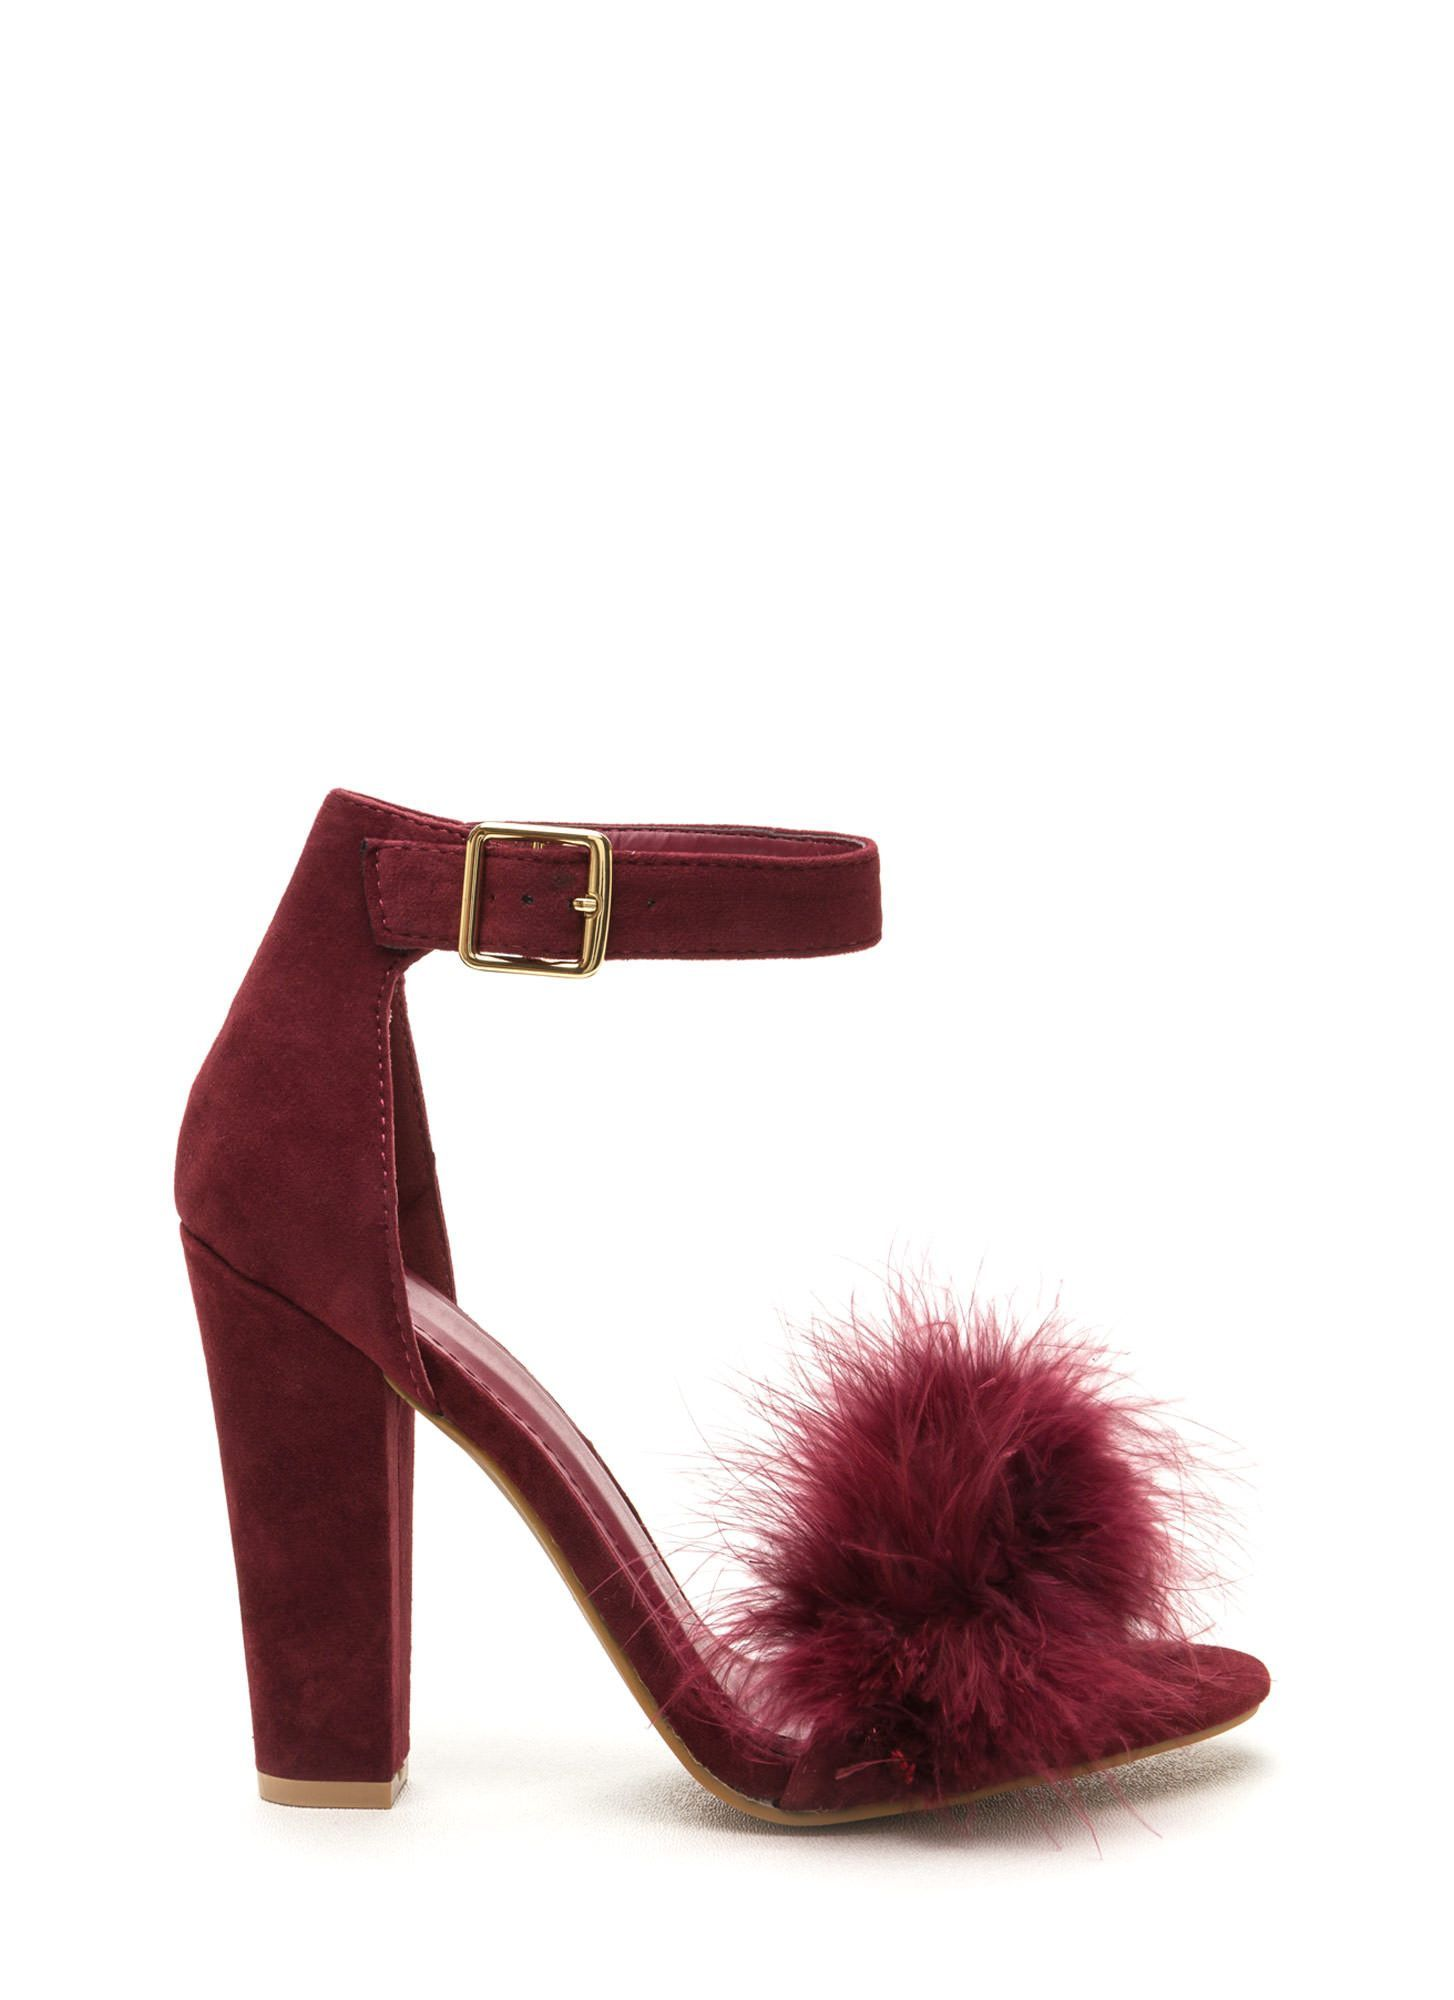 Fancy Feathers Burgundy Chunky Heels | SHOESIES!!! | Pinterest ...